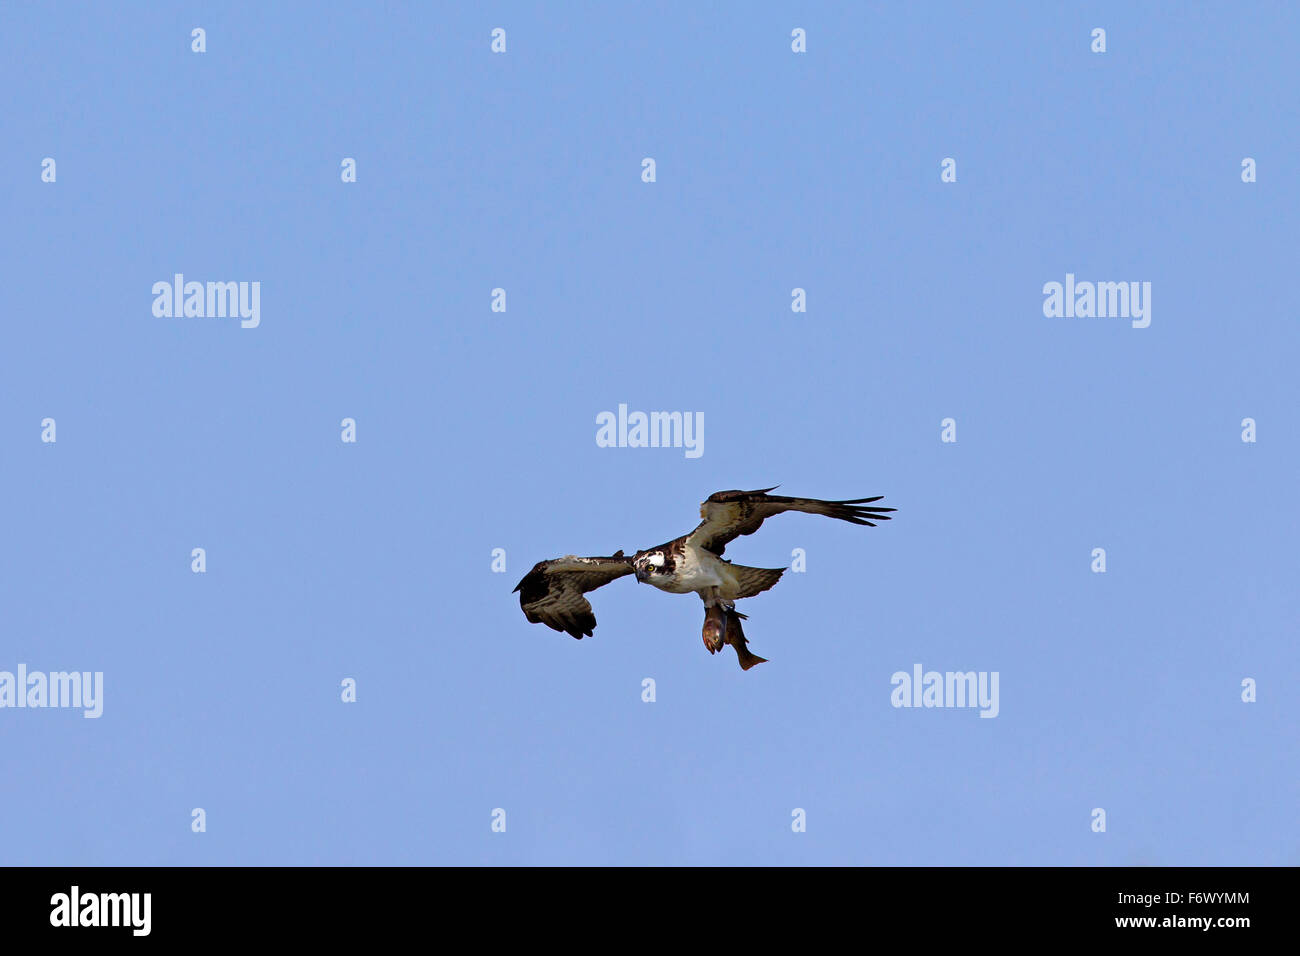 Osprey (Pandion haliaetus) in flight with caught fish in talons - Stock Image